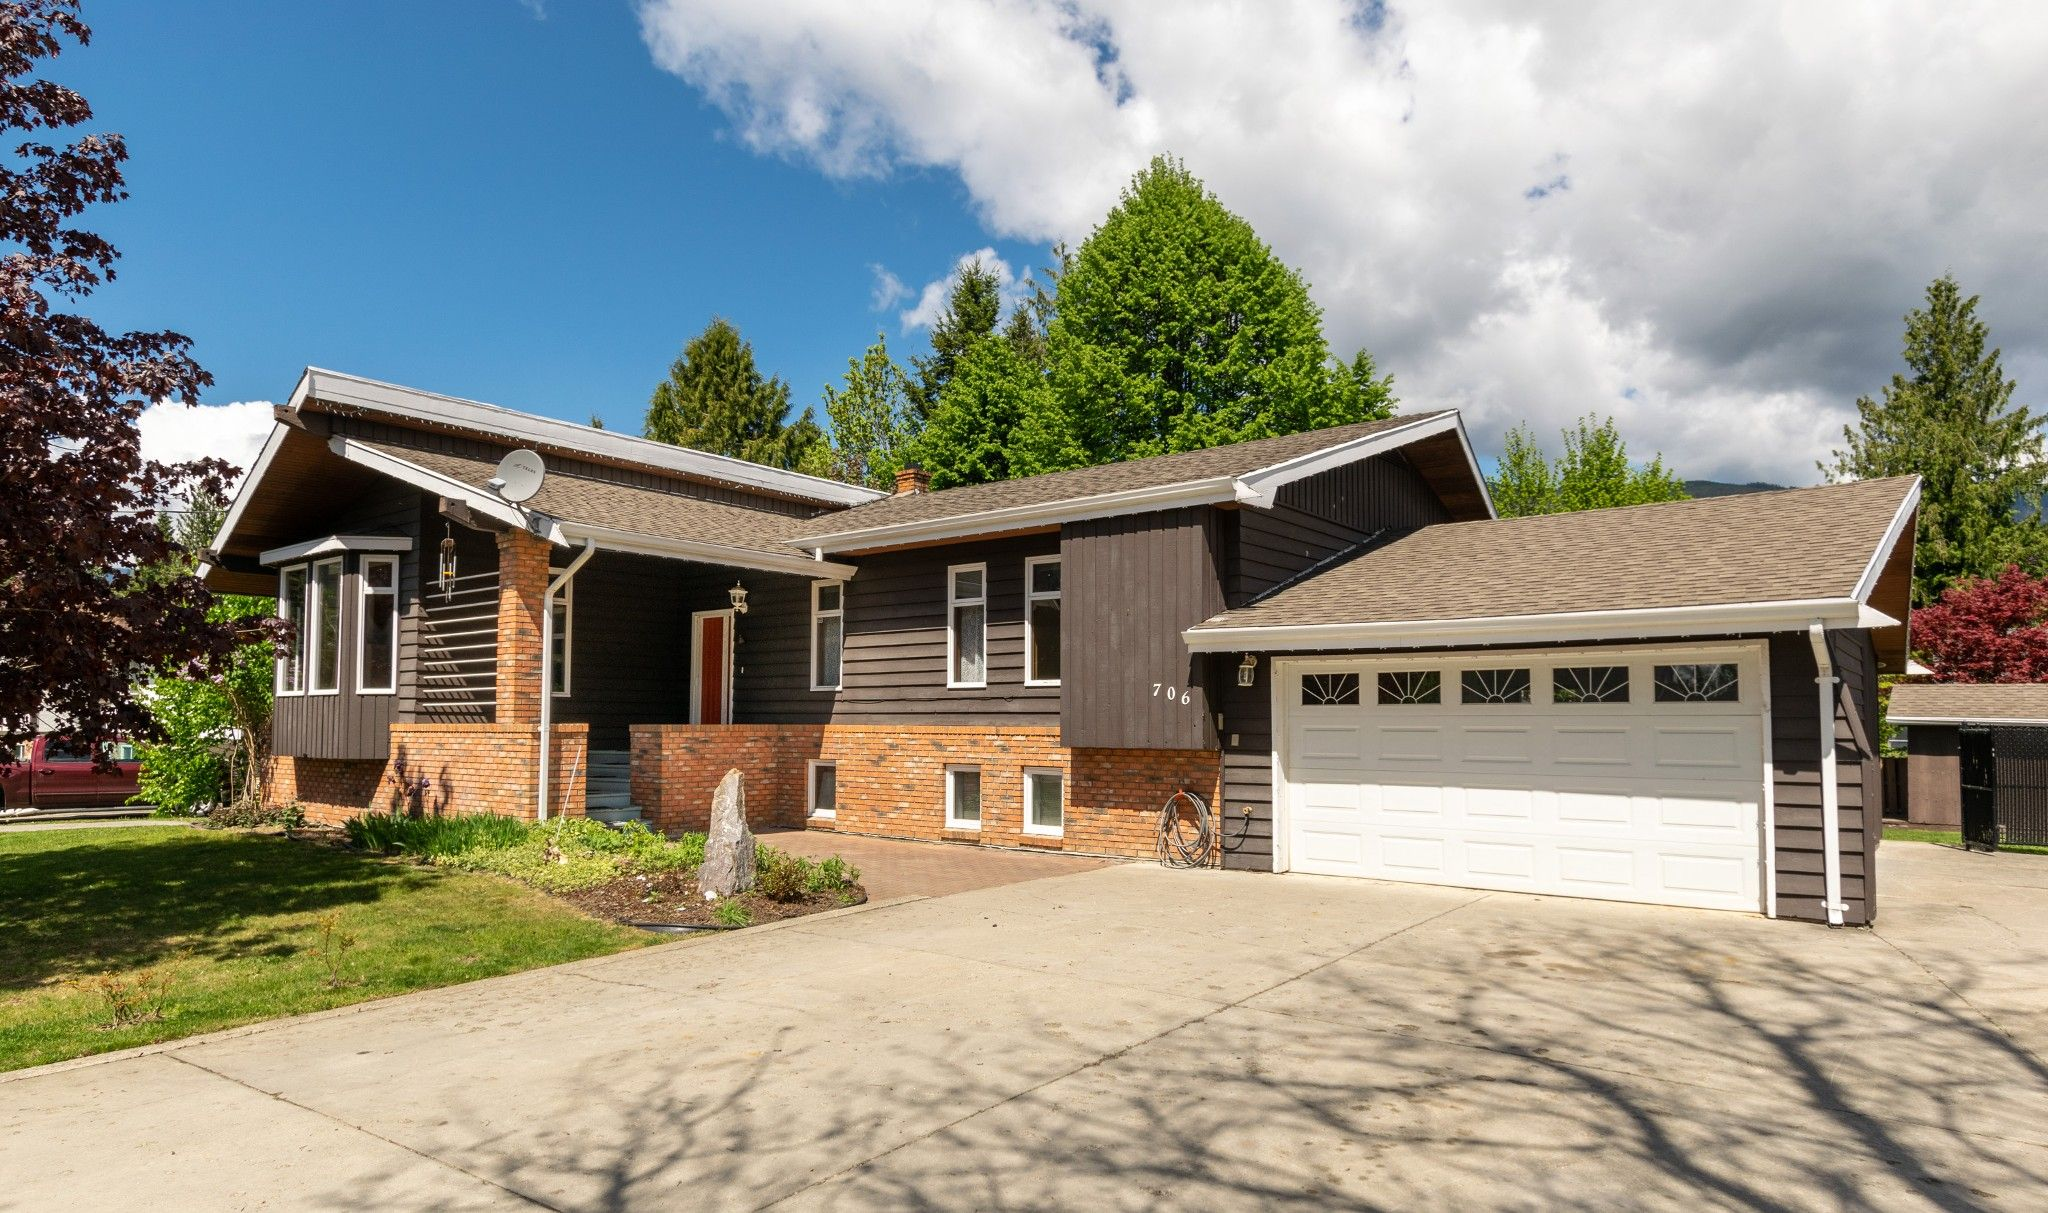 Main Photo: 709 Forest Park Street in Sicamous: House for sale : MLS®# 10231795